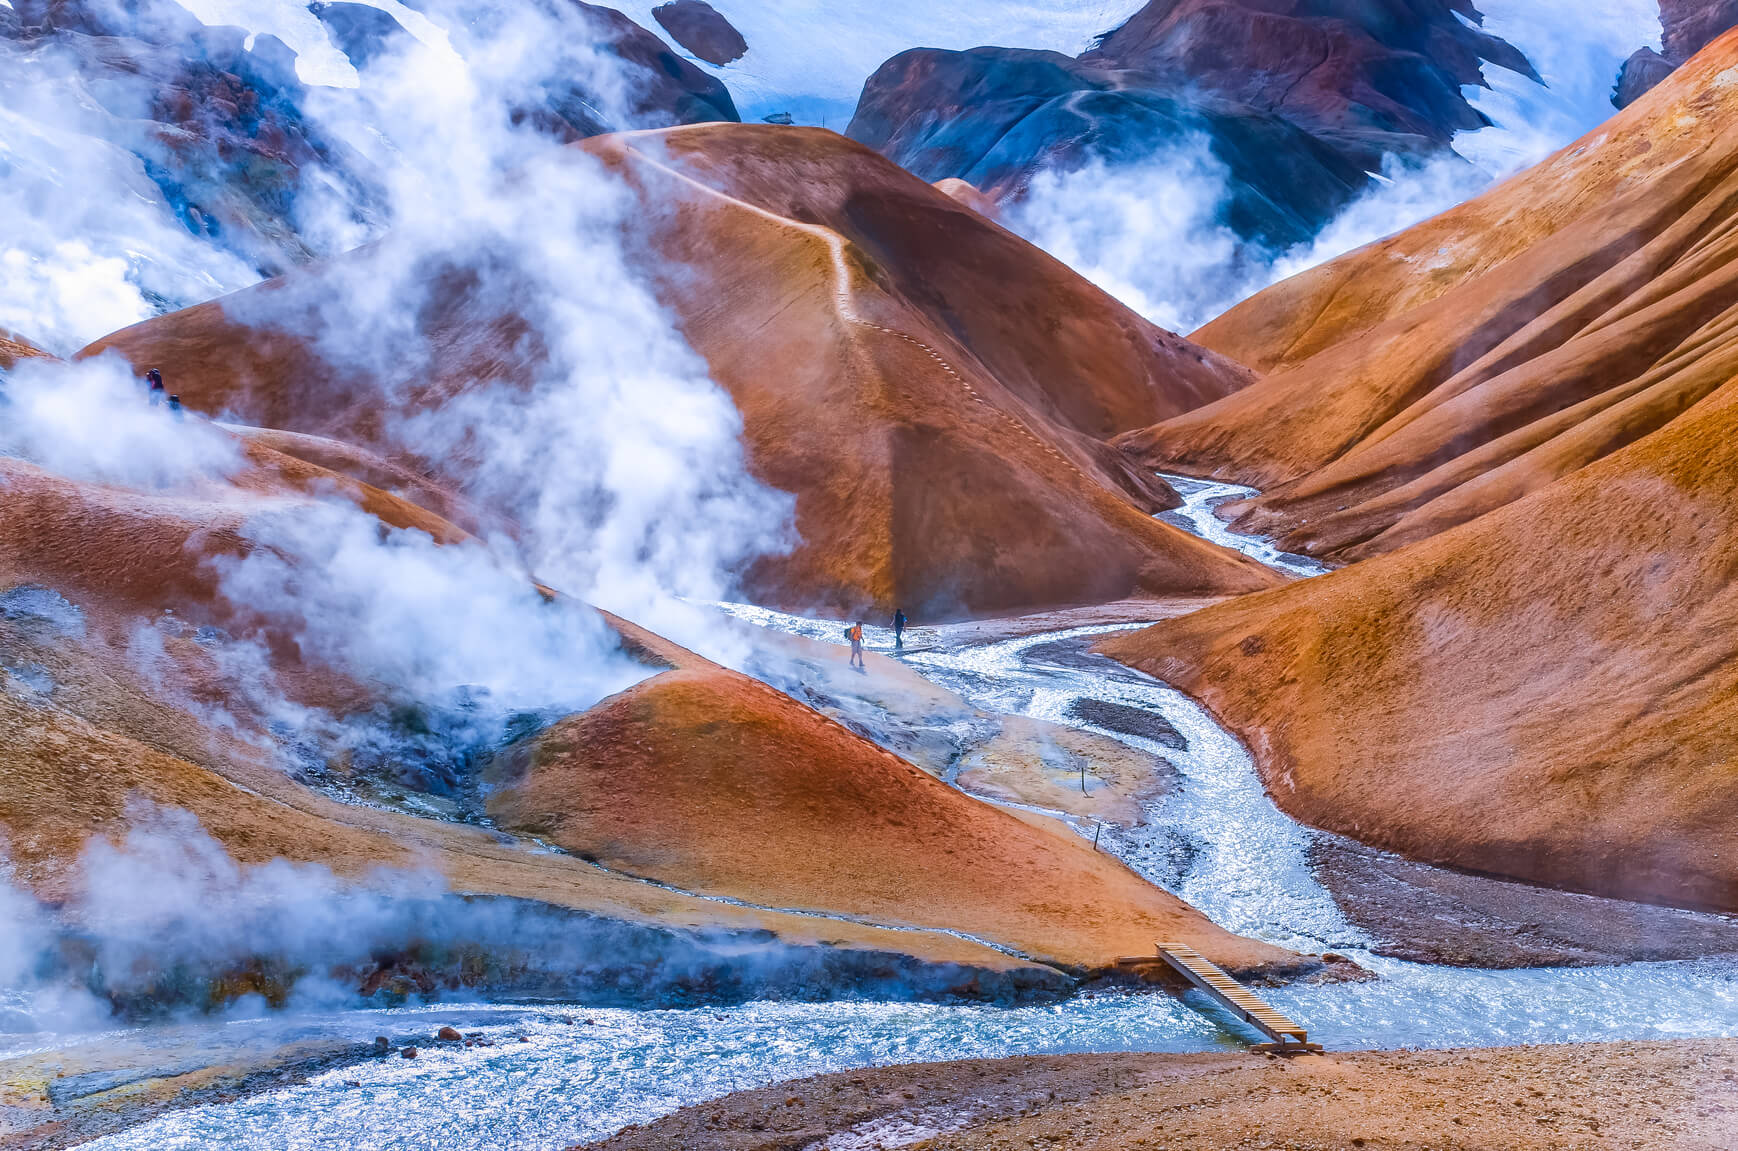 HOT!! SUMMER: Pittsburgh to Reykjavik, Iceland for only $189 roundtrip